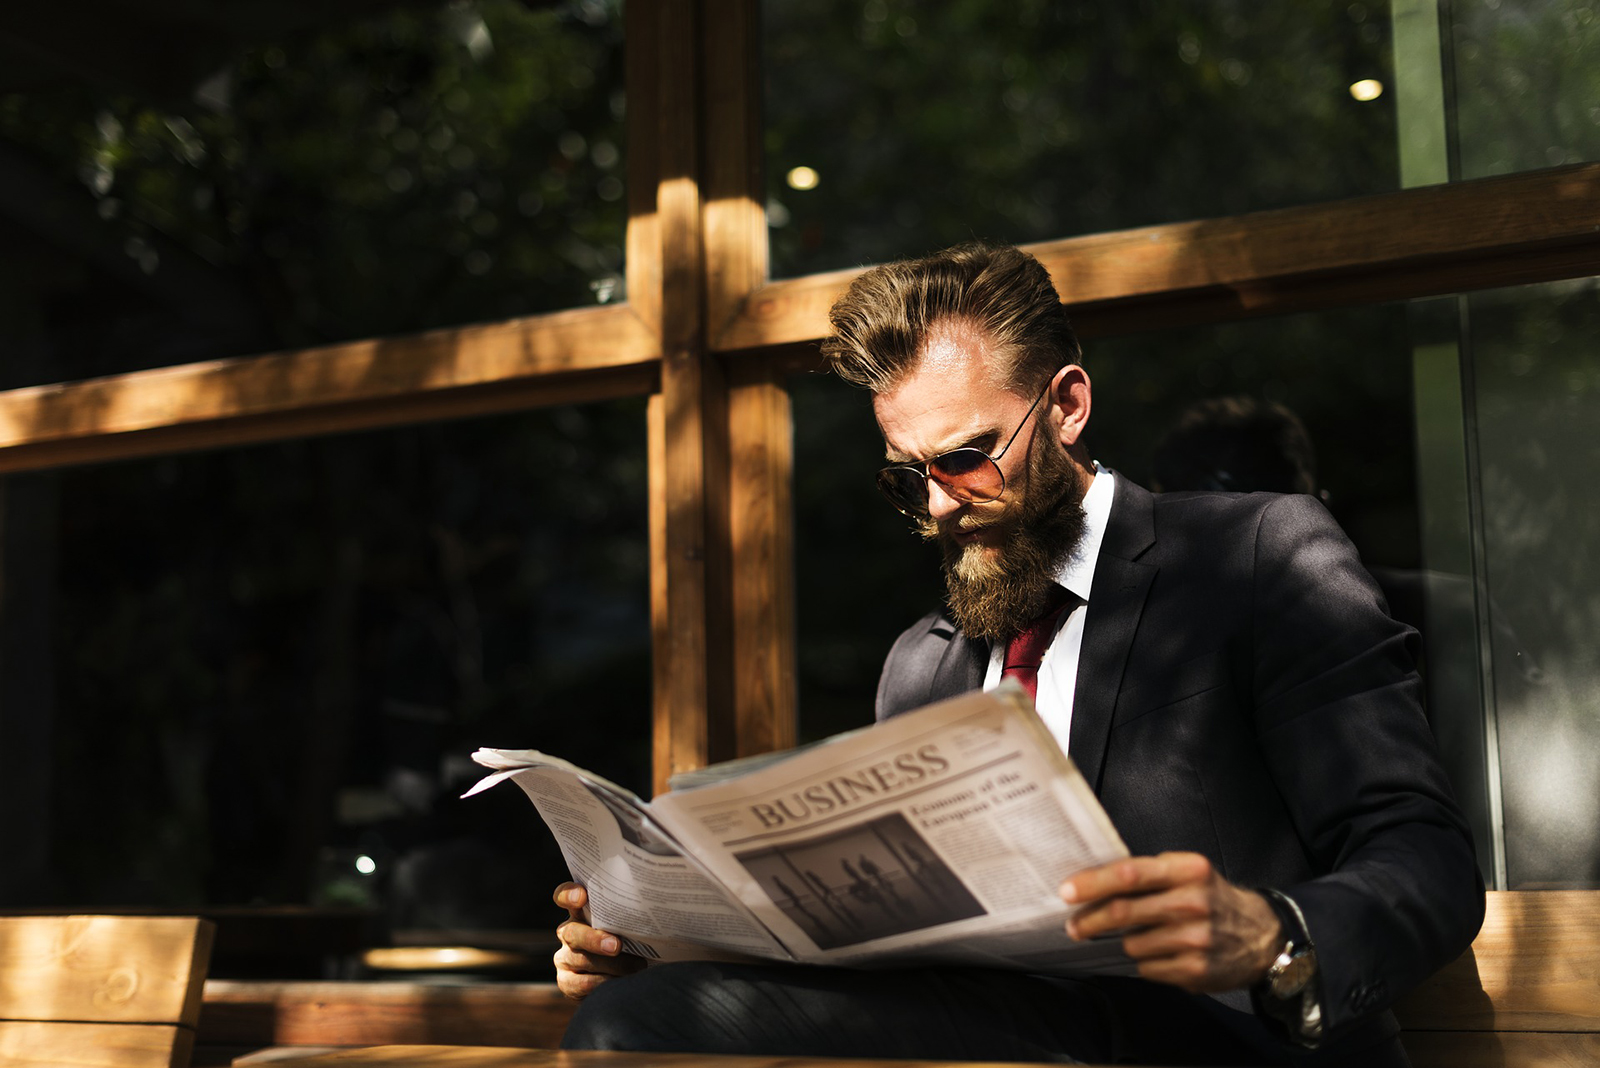 Man Reading Newspaper | 6 Top Trending Hairstyles For Guys With Beards in 2020